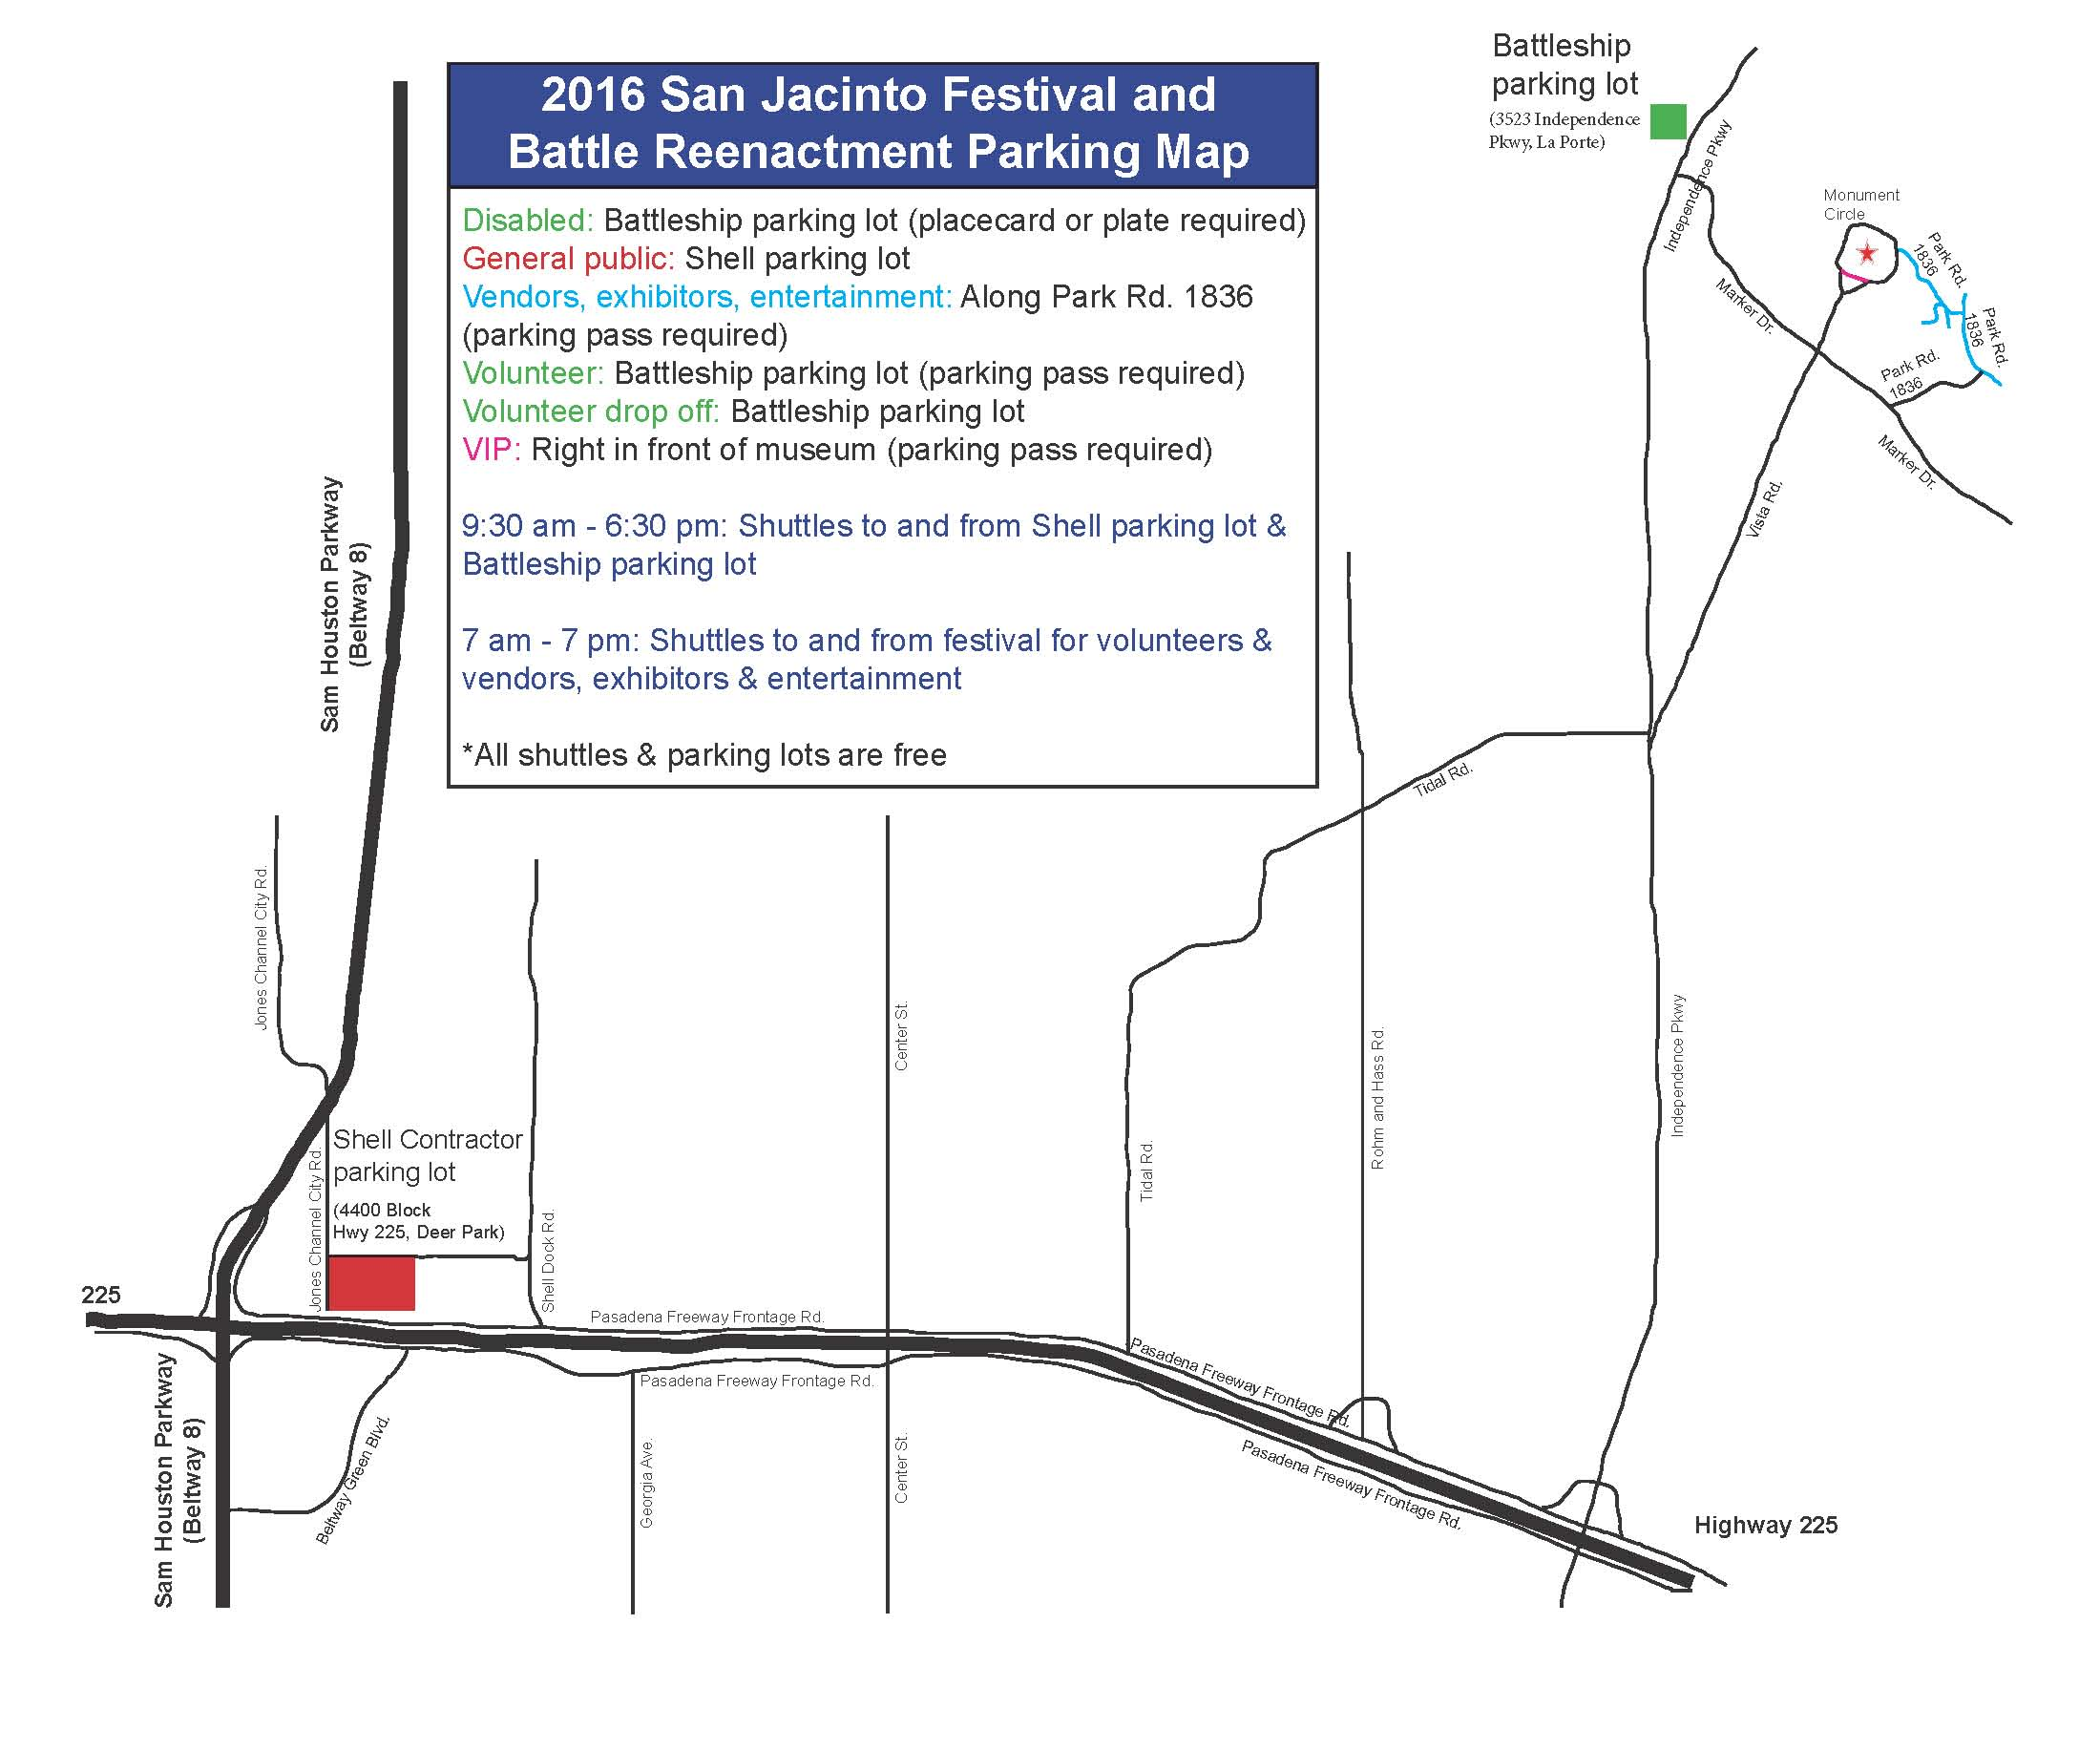 Map showing location of parking for the 2016 San Jacinto Day Festival and Battle Reenactment